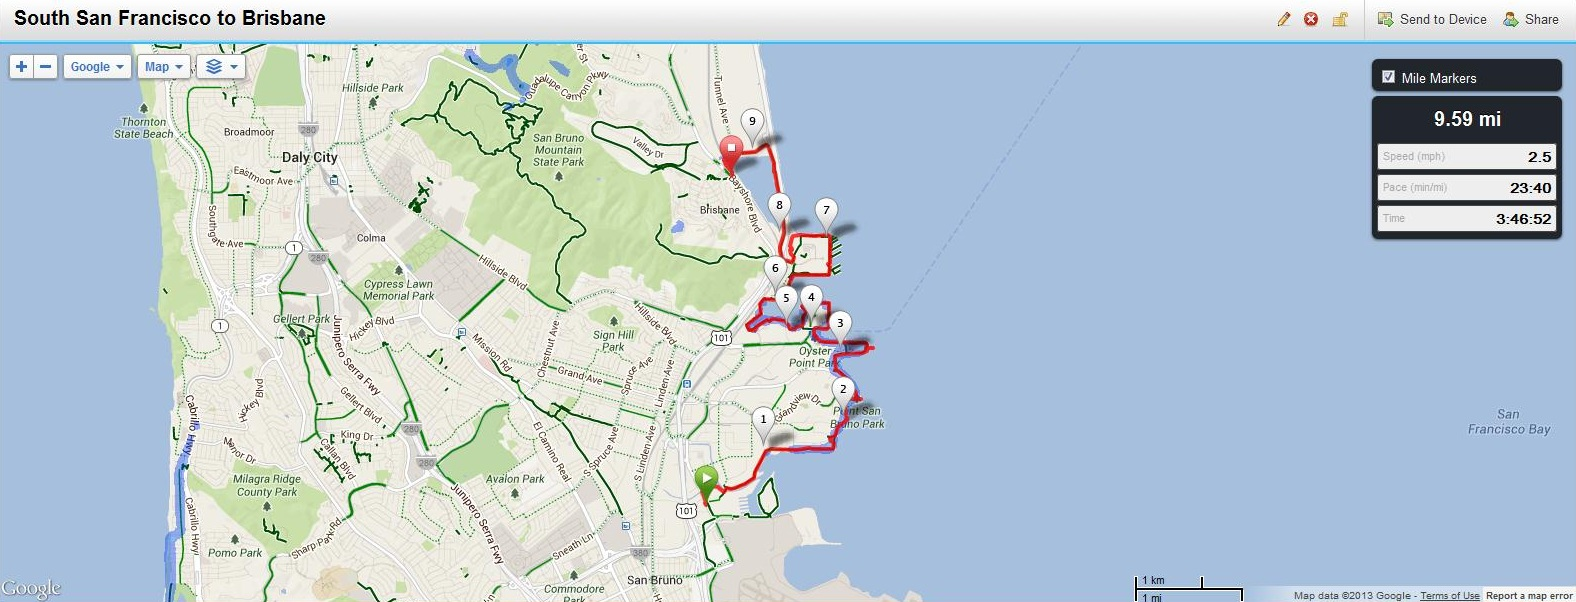 Maps Hike Stats and Transportation The San Francisco Bay Trail